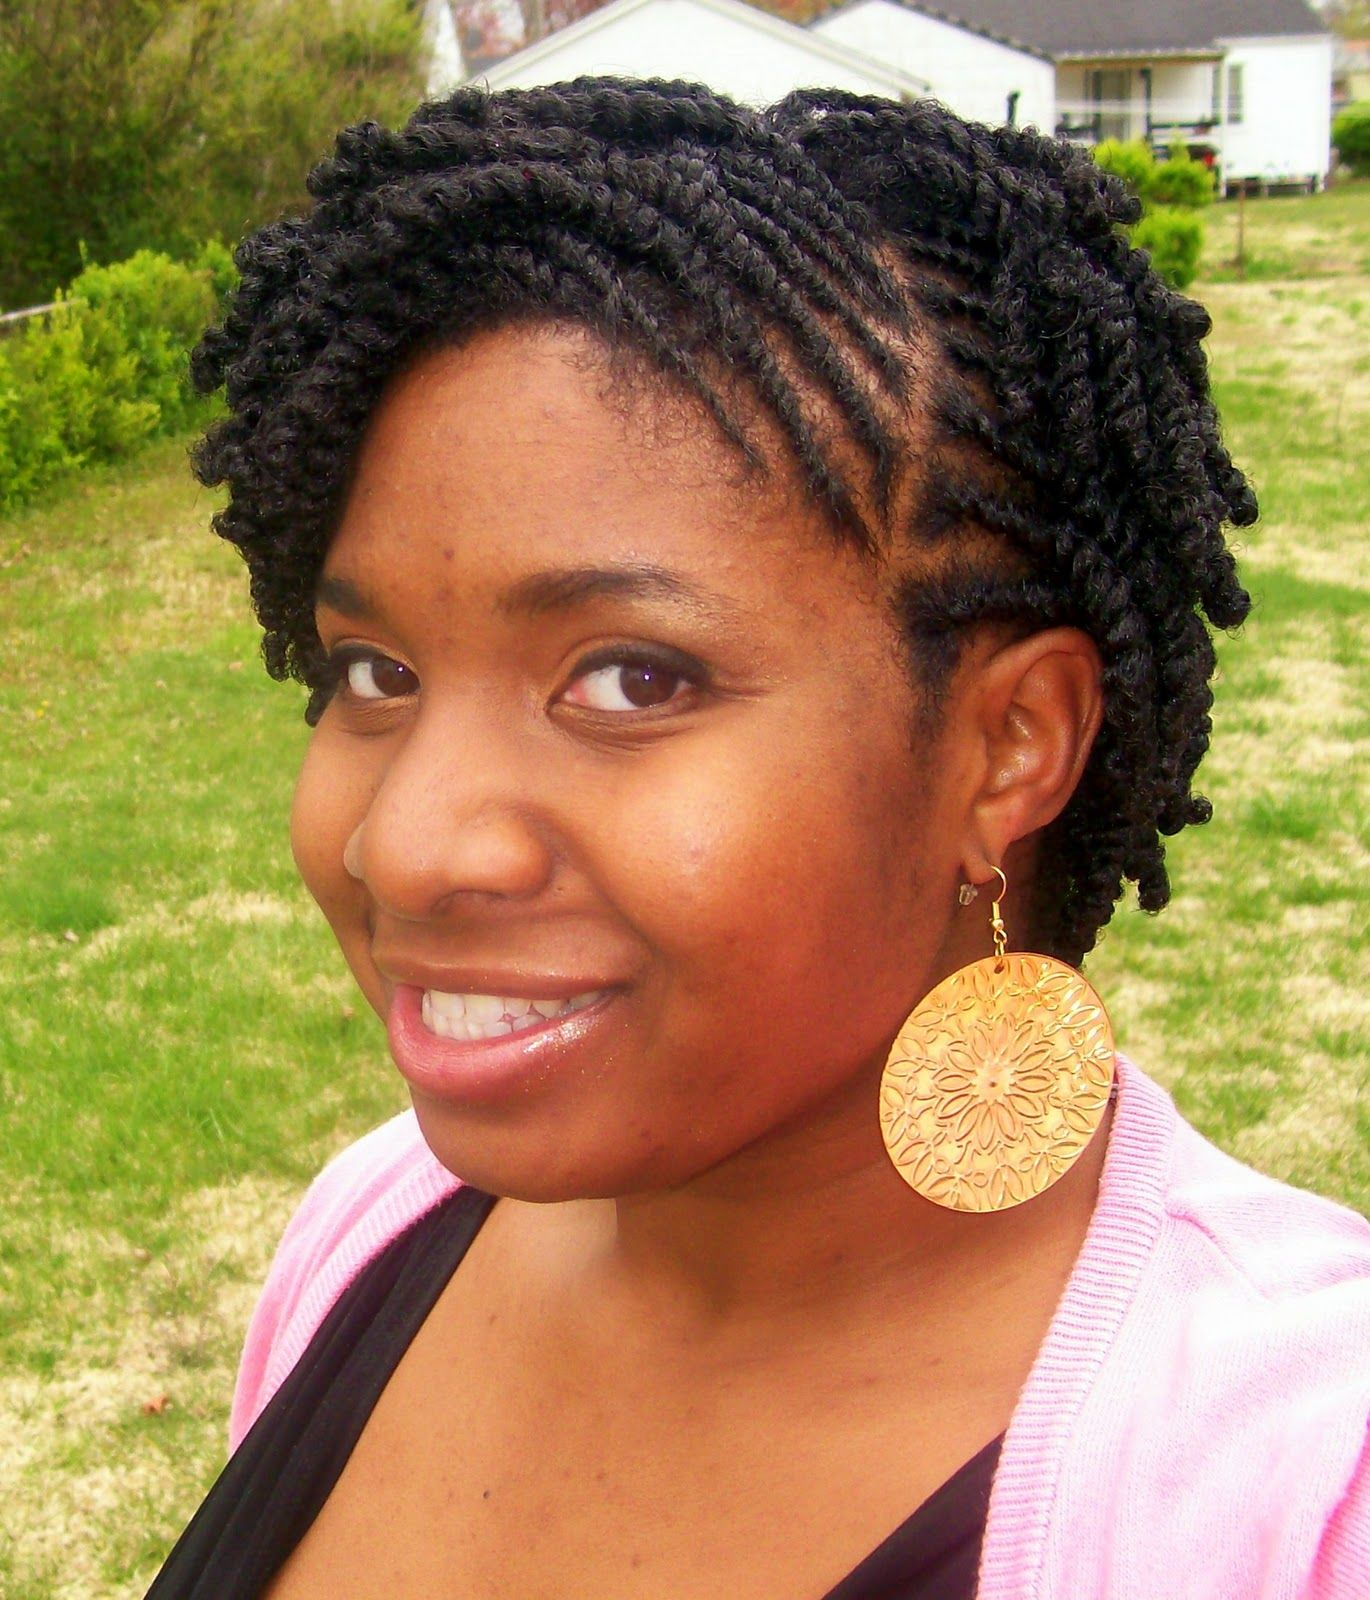 Natural Hairstyles For Work: 15 Fab Looks | Hair twist styles, Natural hair styles for black ...